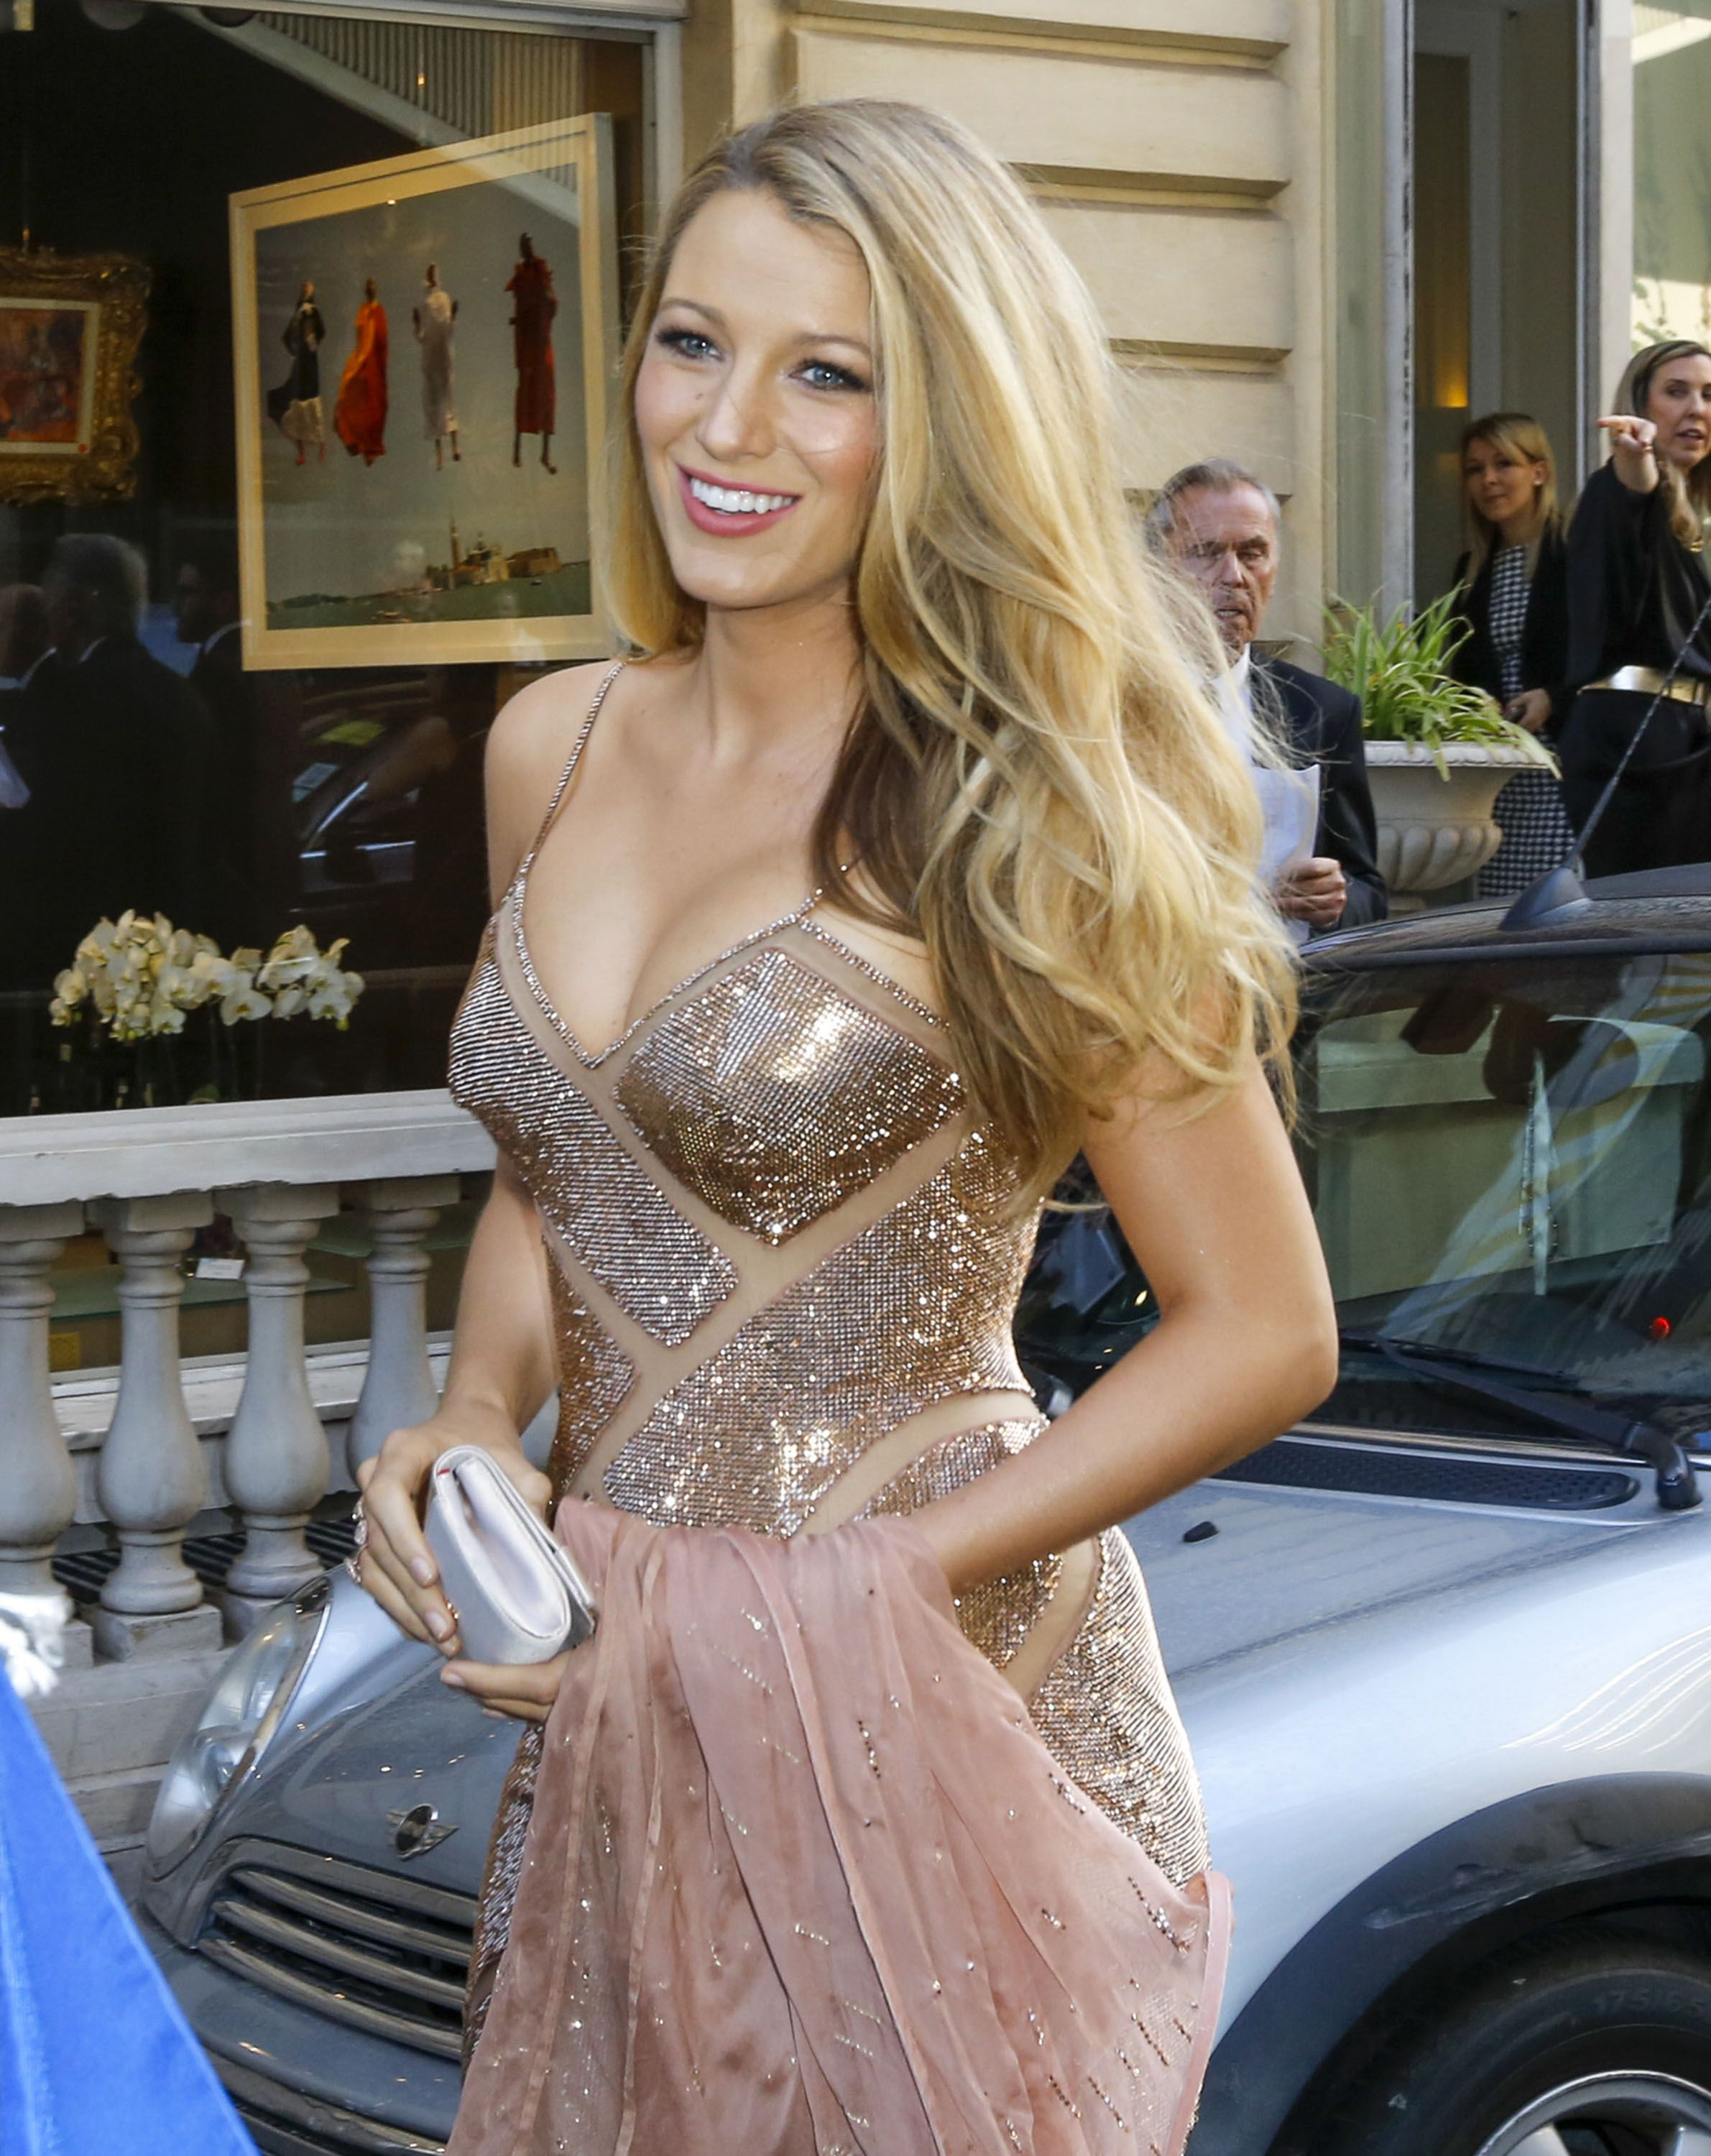 Discussion on this topic: 11 Ridiculously Stylish Blake Lively Moments, 11-ridiculously-stylish-blake-lively-moments/